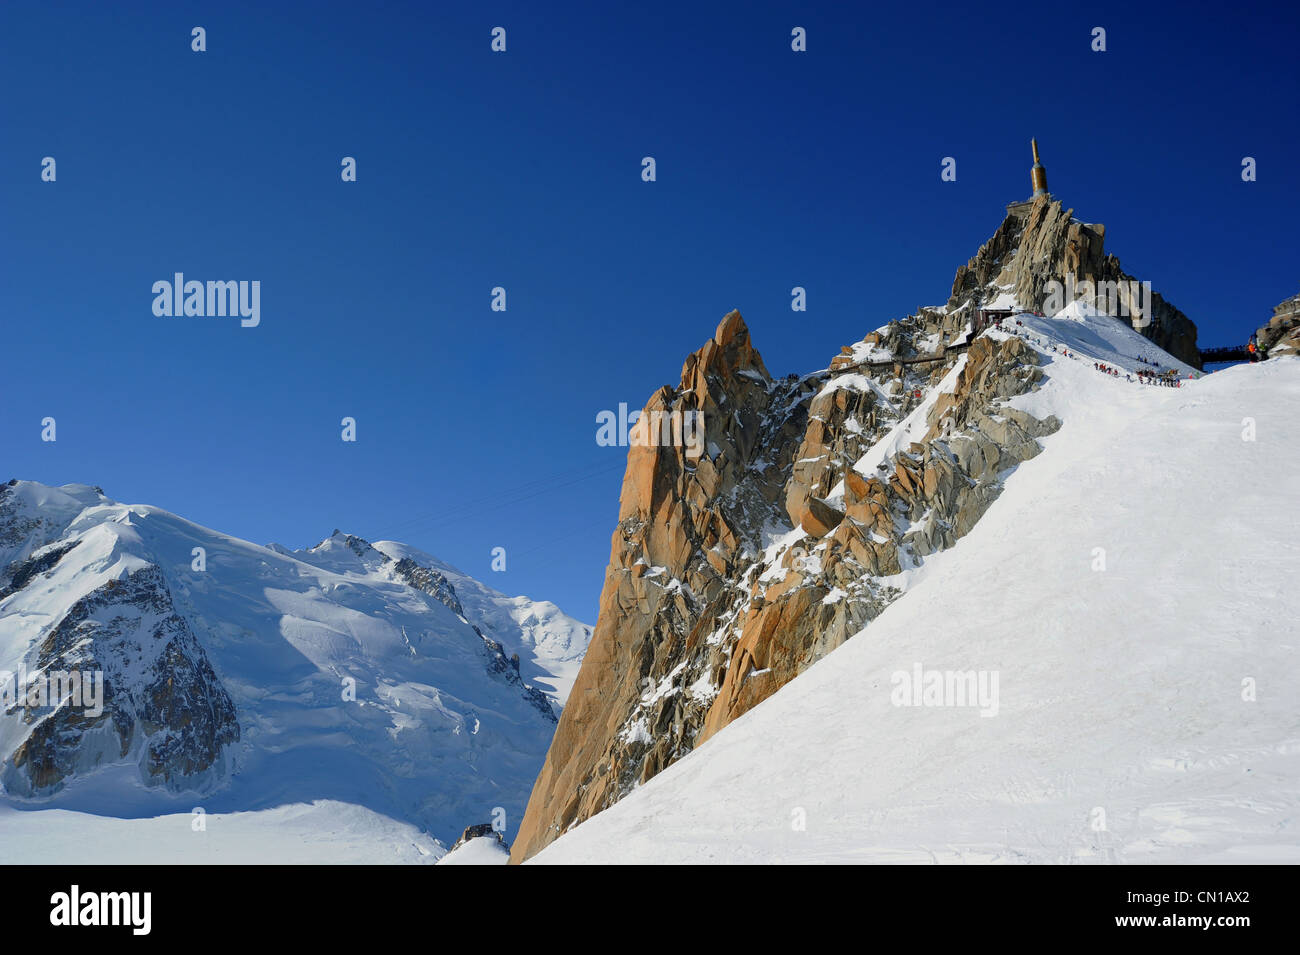 The summit of Aiguille du Midi with Mont Blanc to the left. - Stock Image